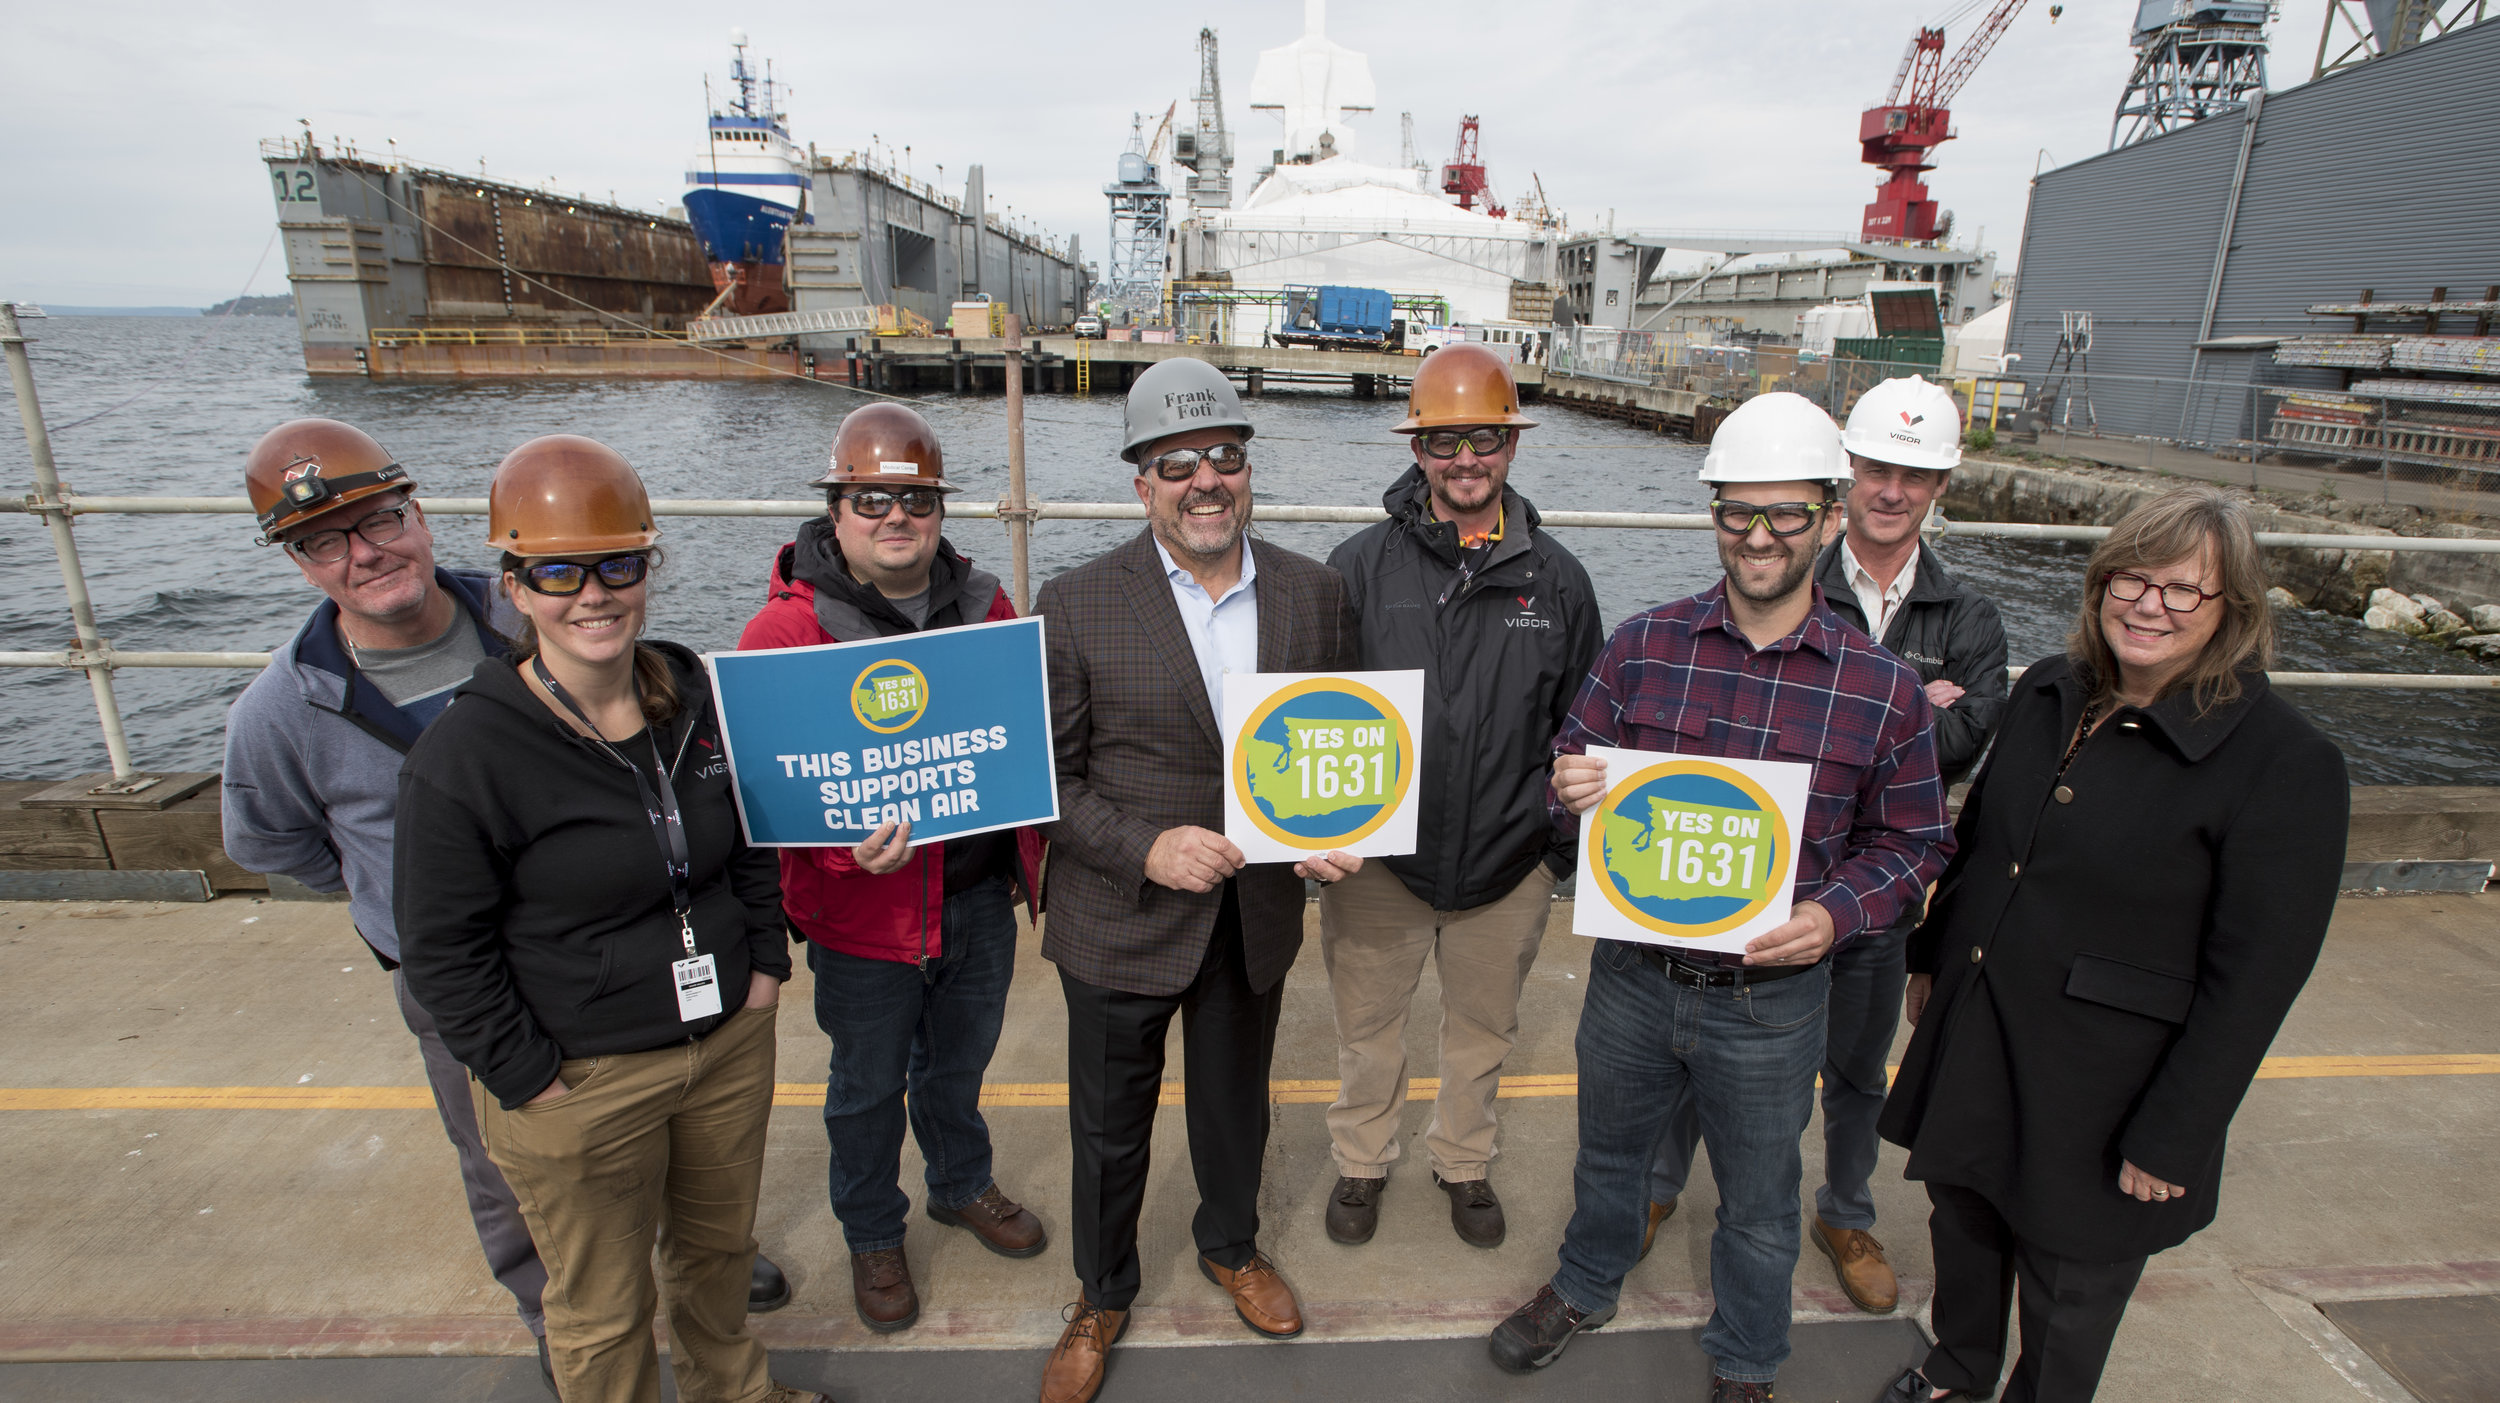 Staff of Vigor Shipyards at a recent Yes on 1631 event at the shipyards. Photo © Hannah Letinich